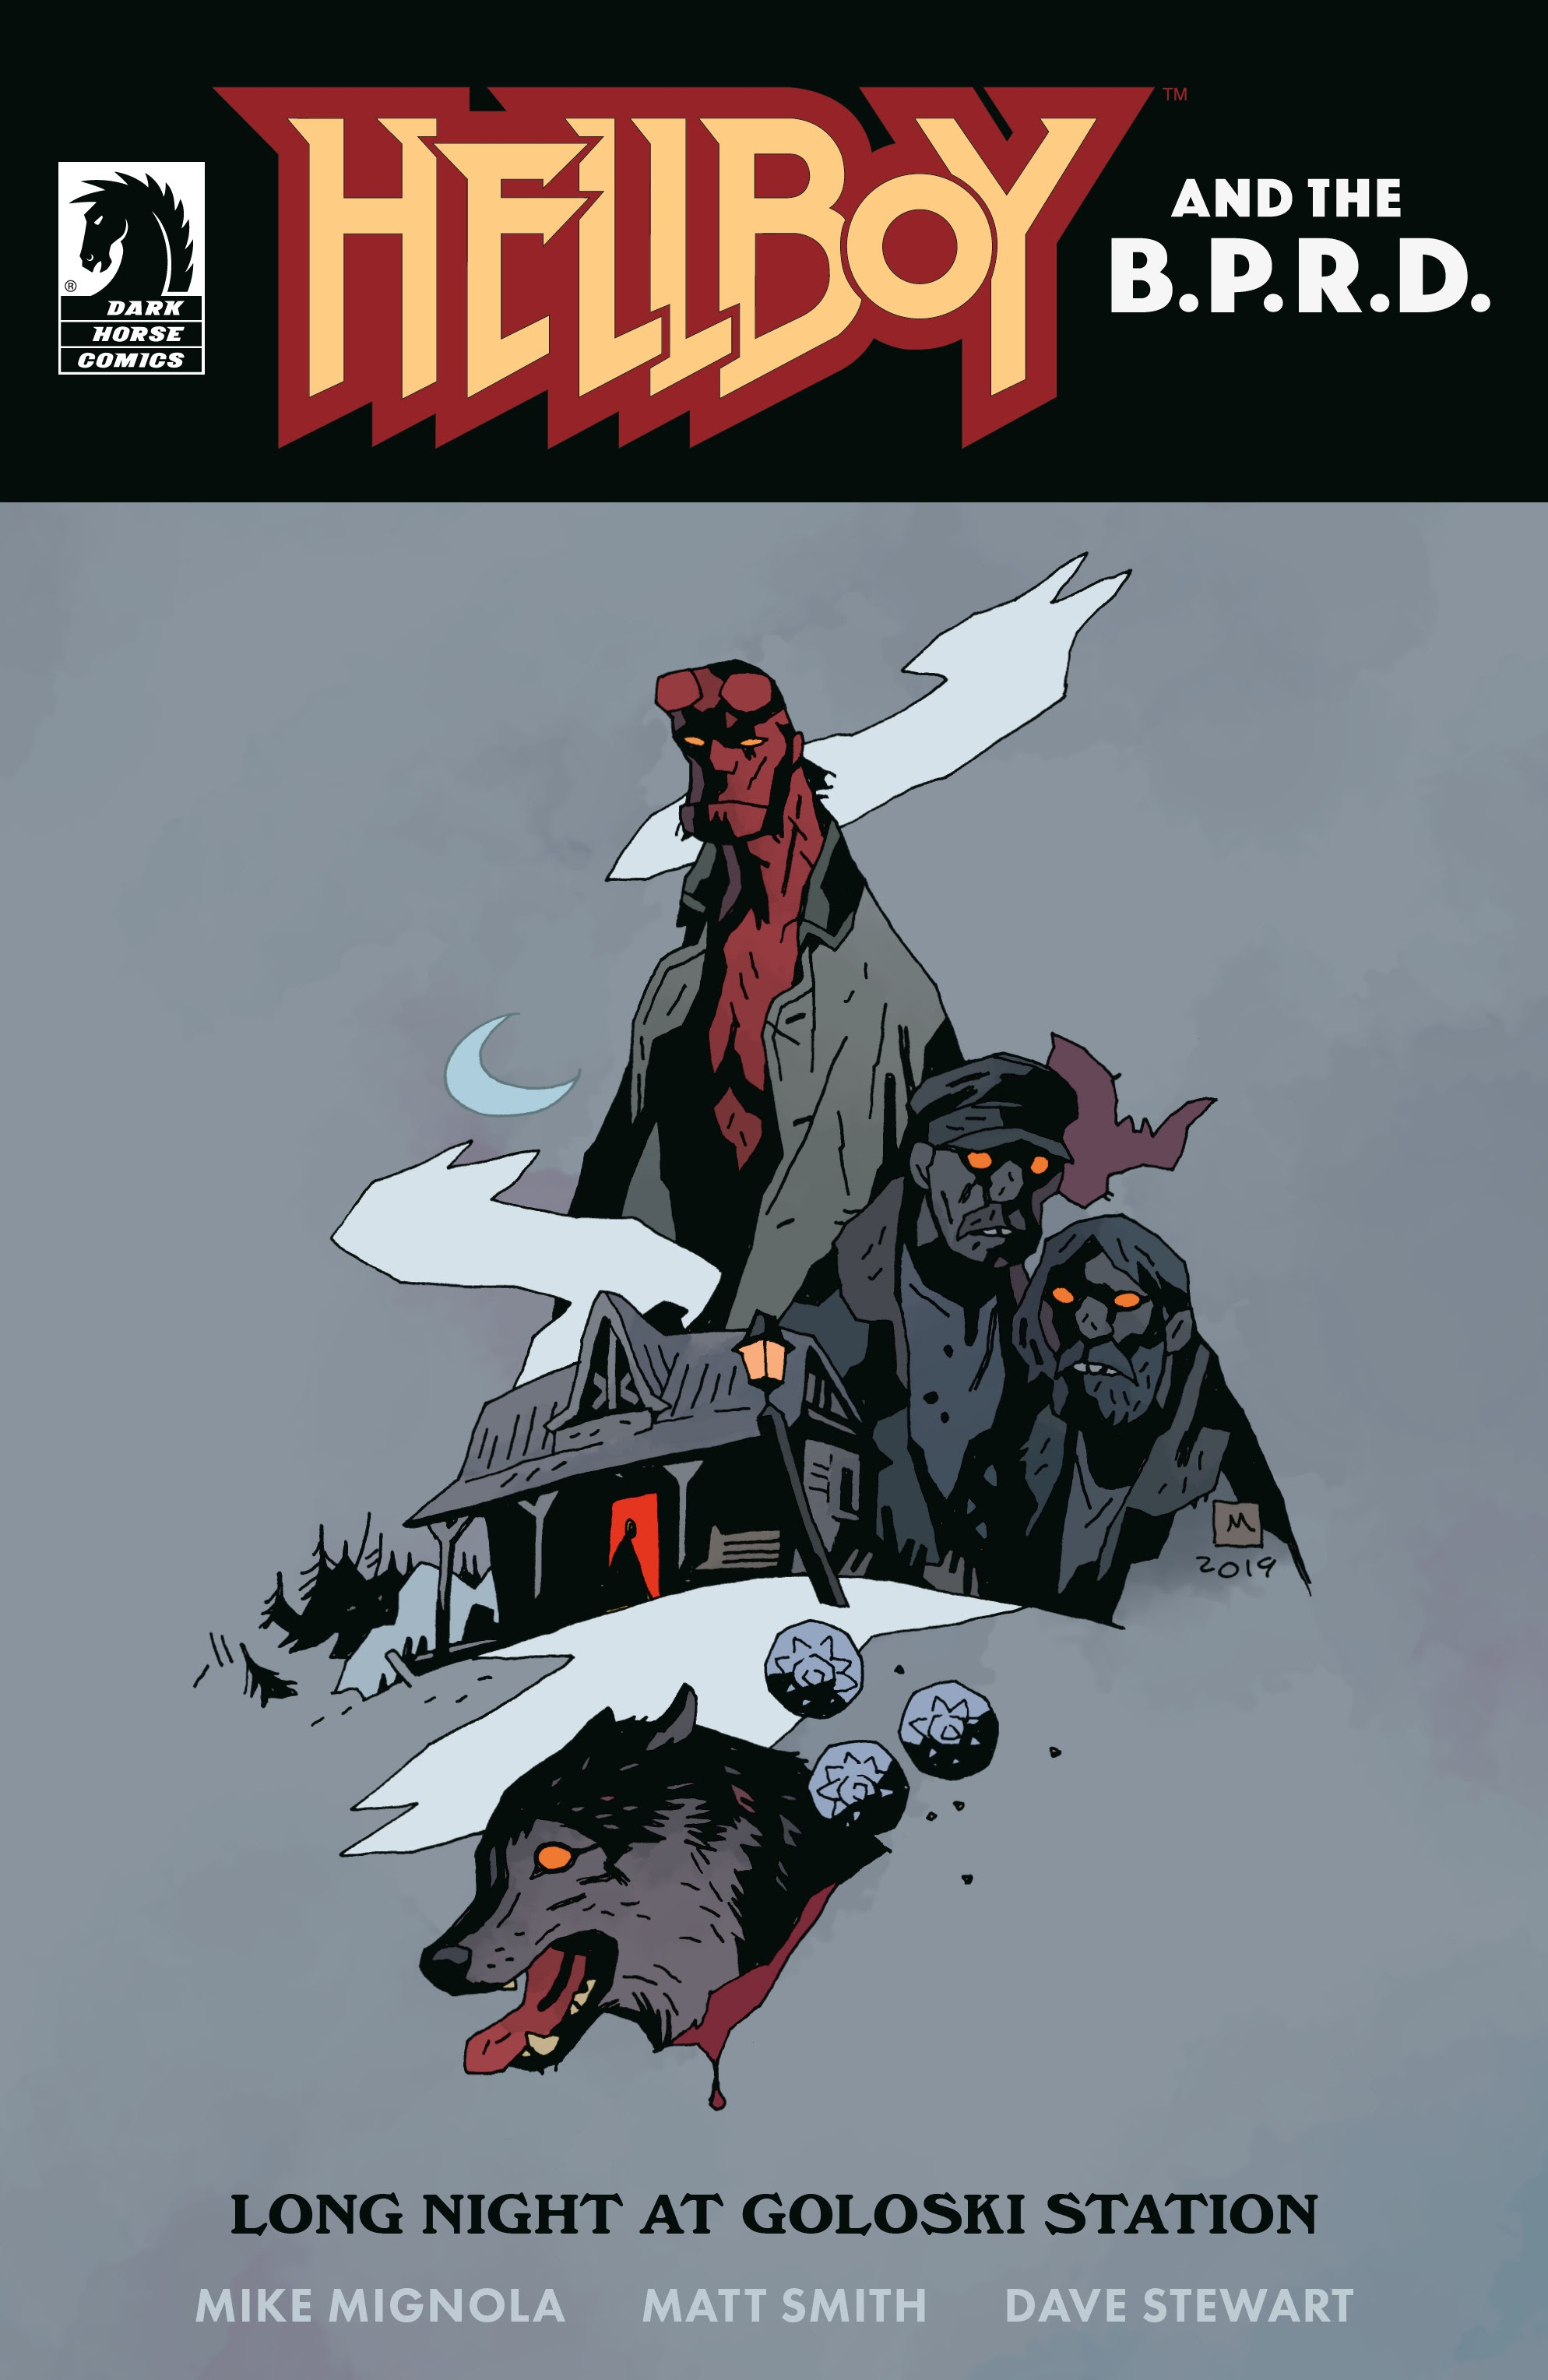 Hellboy and the B.P.R.D.: Long Night at Goloski Station Full Page 1